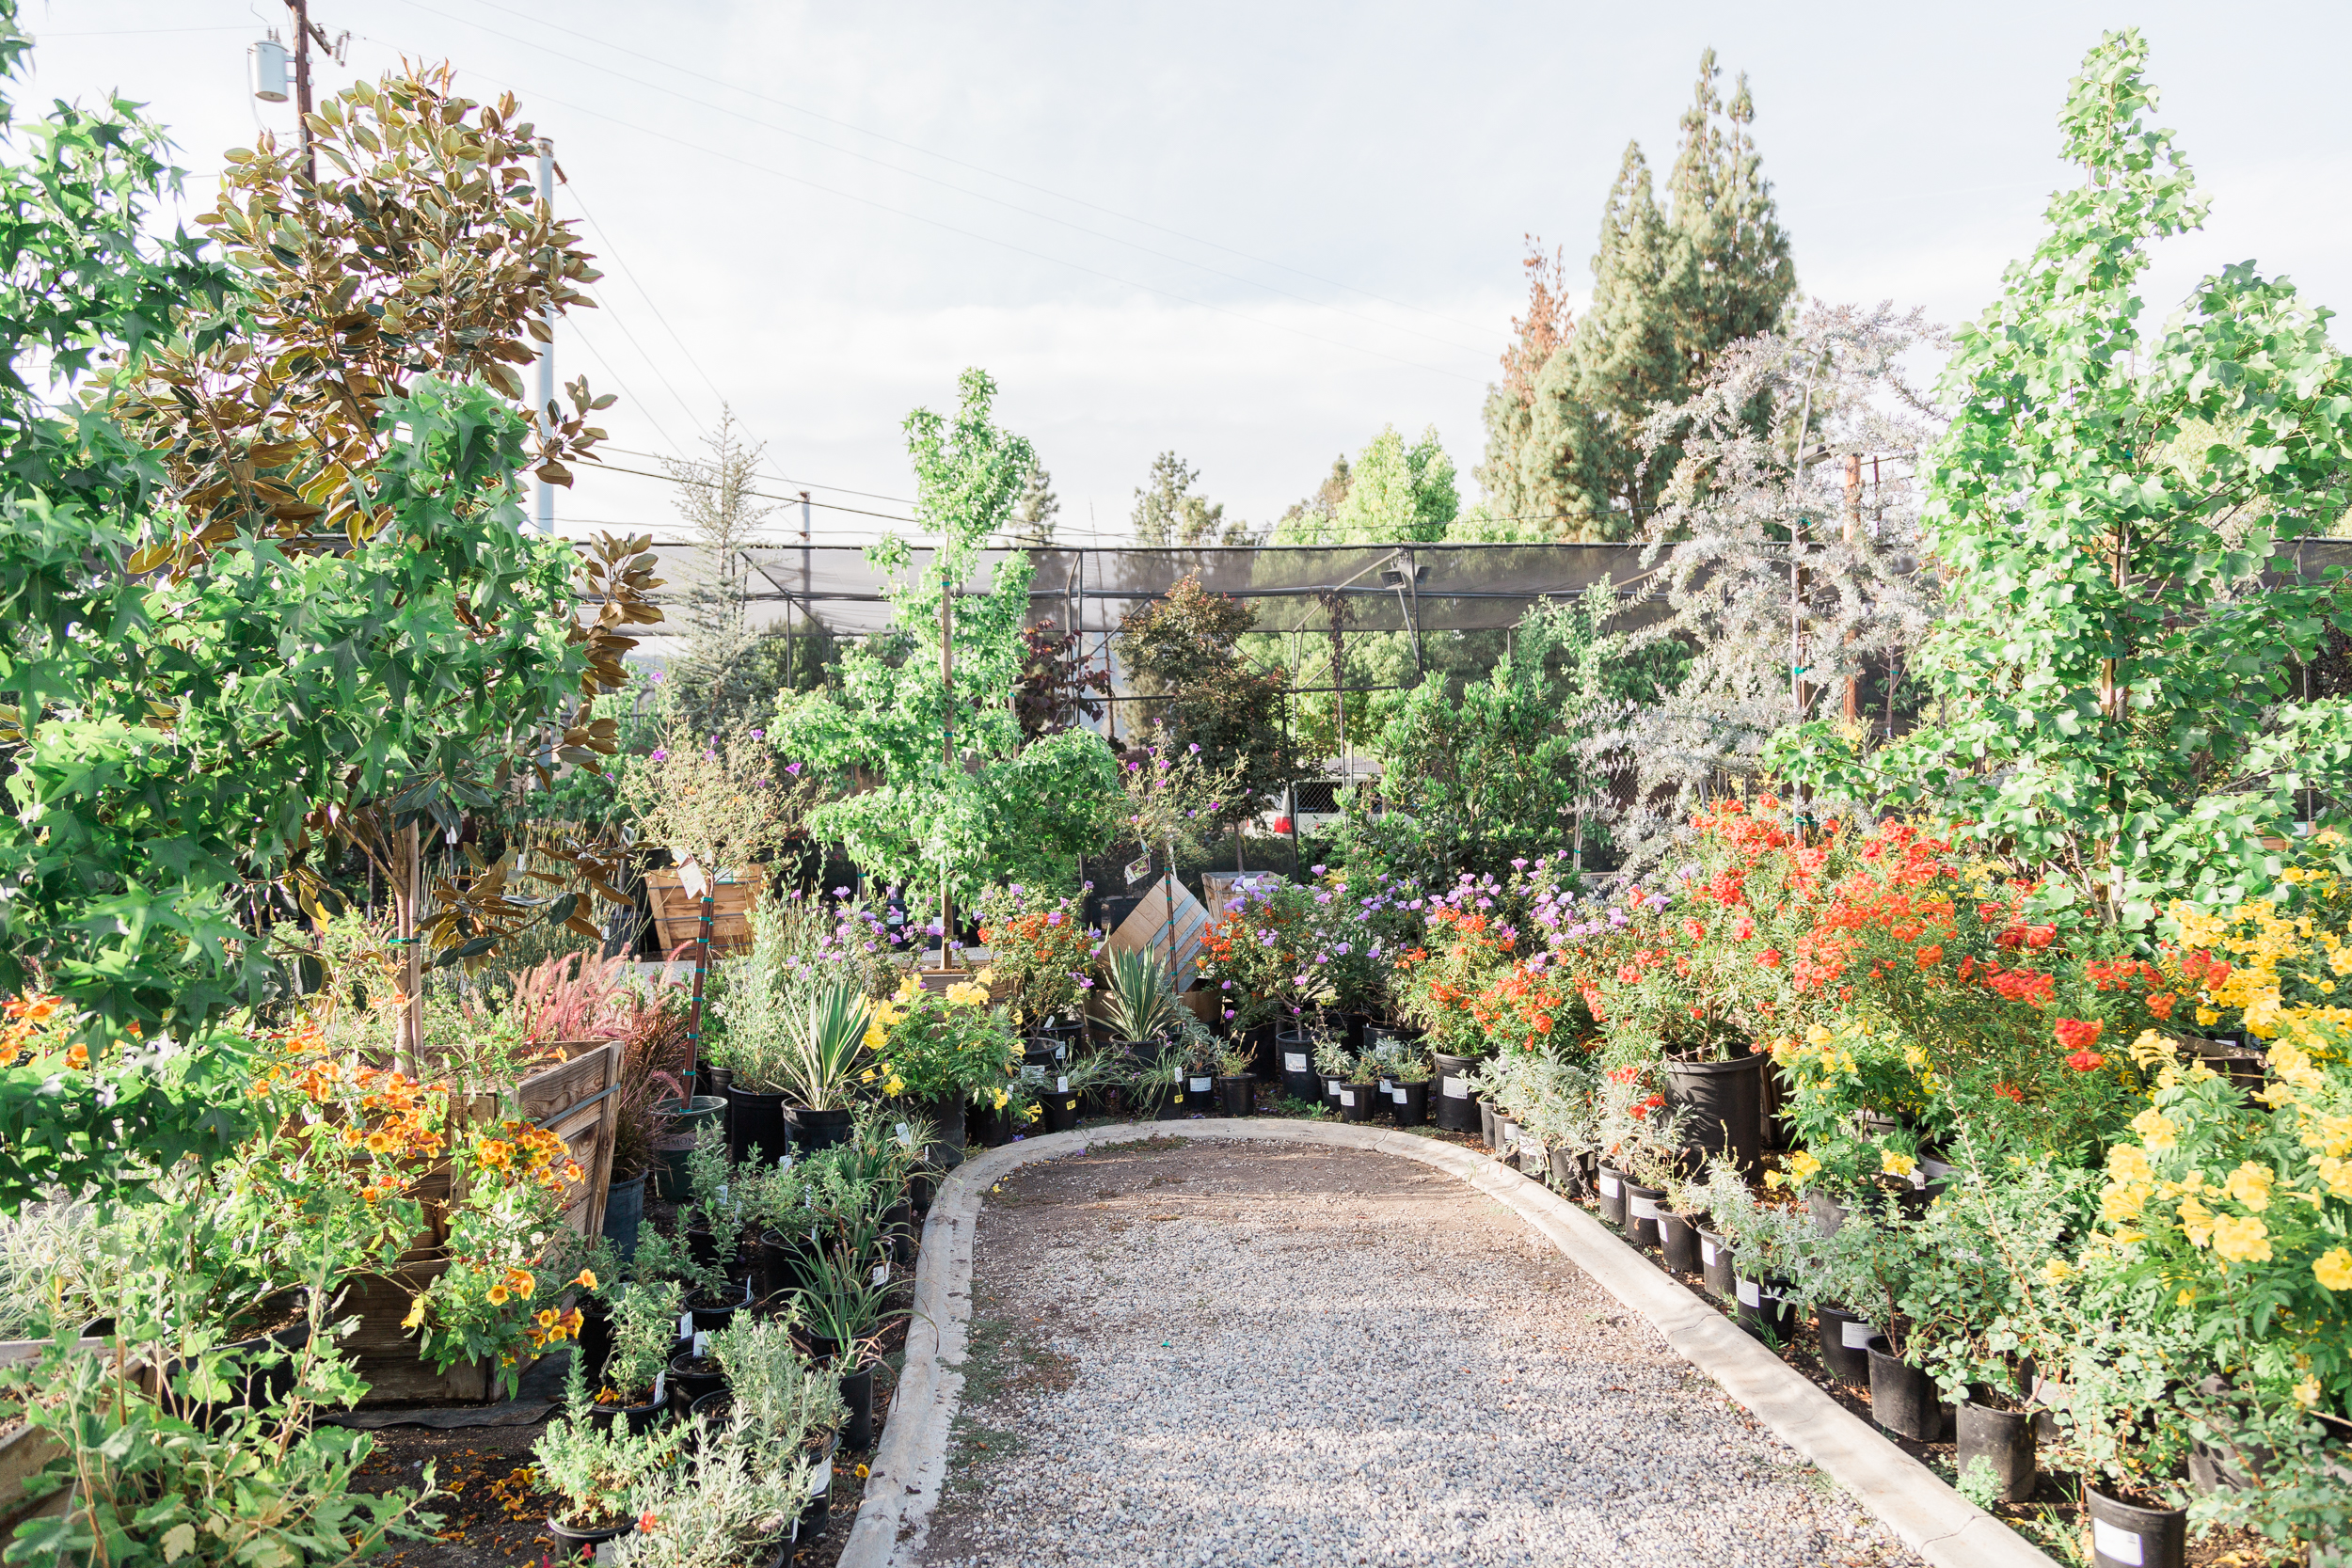 Delicieux Glendora Gardens Is Proud To Offer An Impressive Selection Of Quality  Trees. Our Varieties Are Constantly Shifting With The Seasons, So Be Sure  To Stop By ...